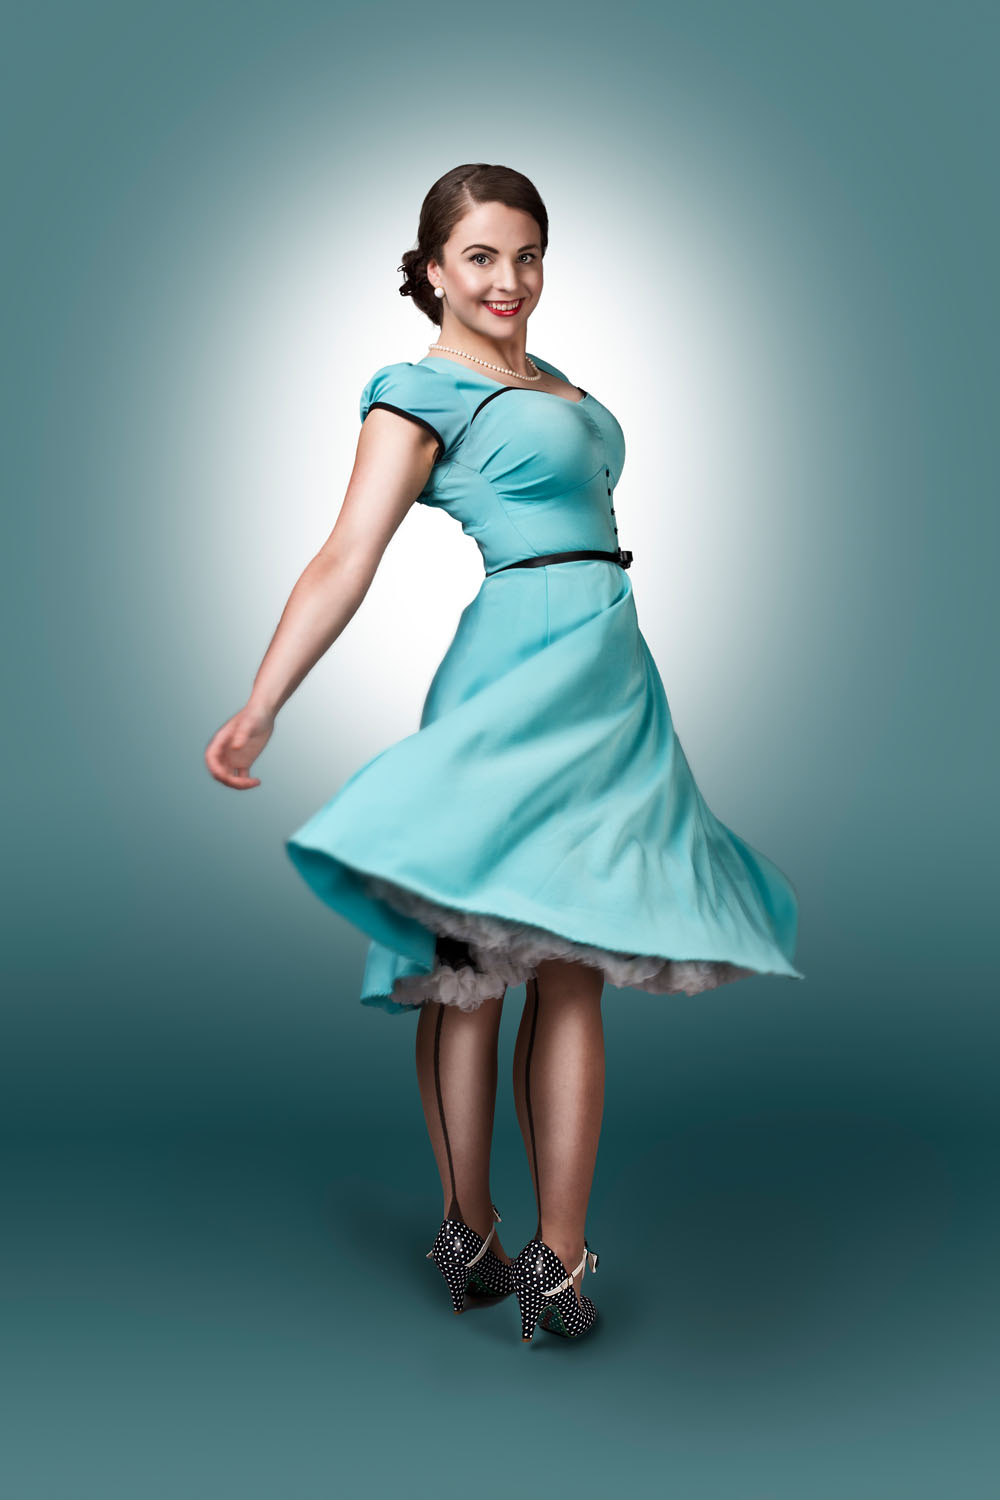 Beth Blue Dress Twirl_edit.jpg